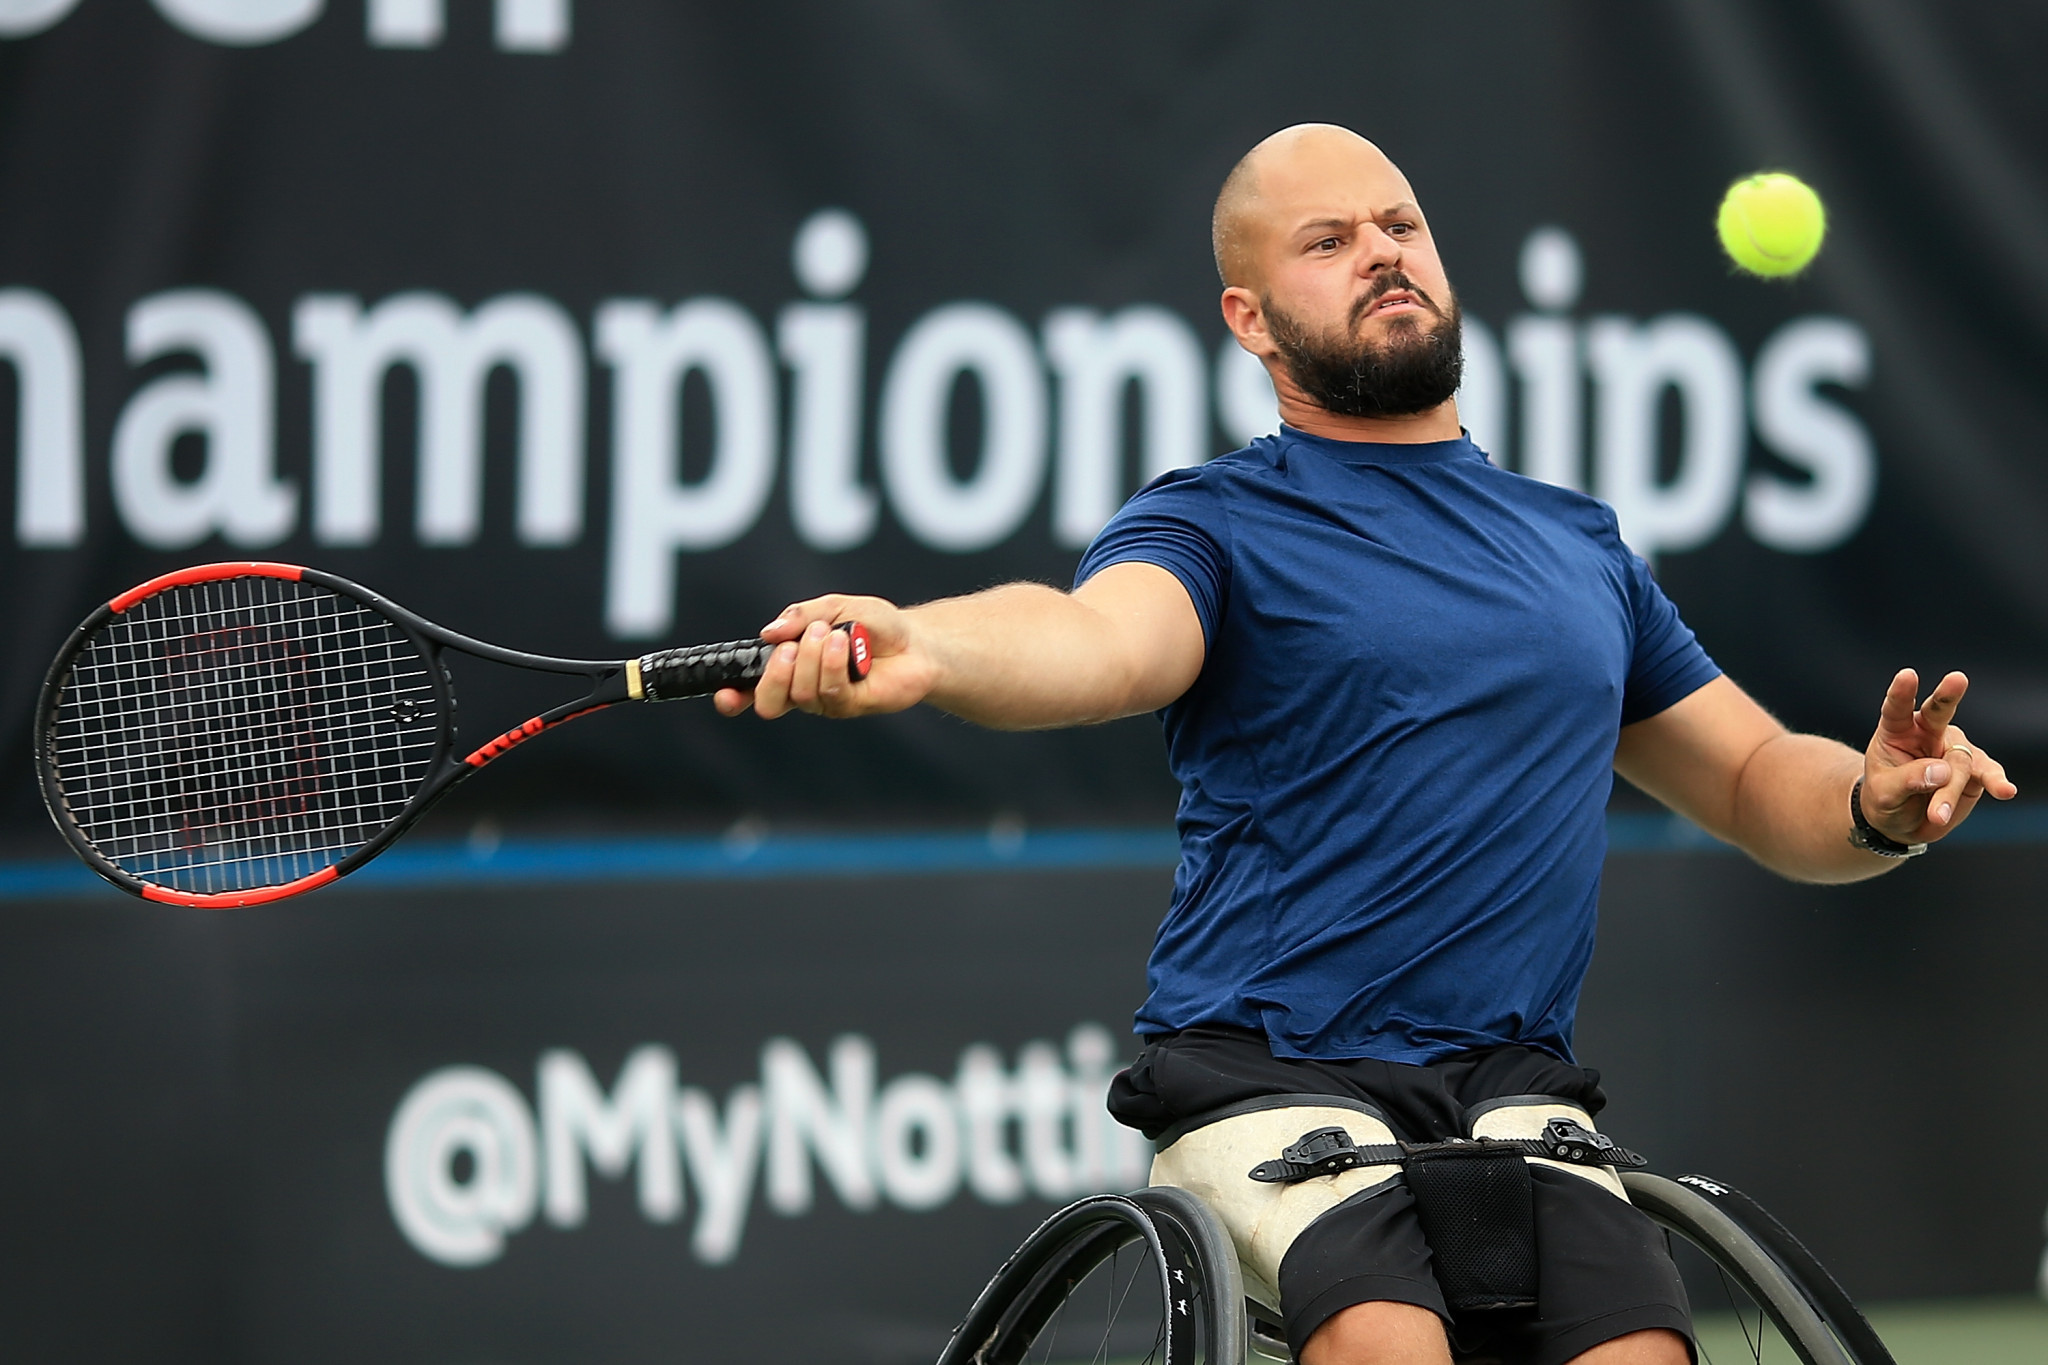 Wimbledon Wheelchair Tennis singles champion Stefan Olsson has cruised into the quarter-finals at the ITF Belgian Open ©Getty Images